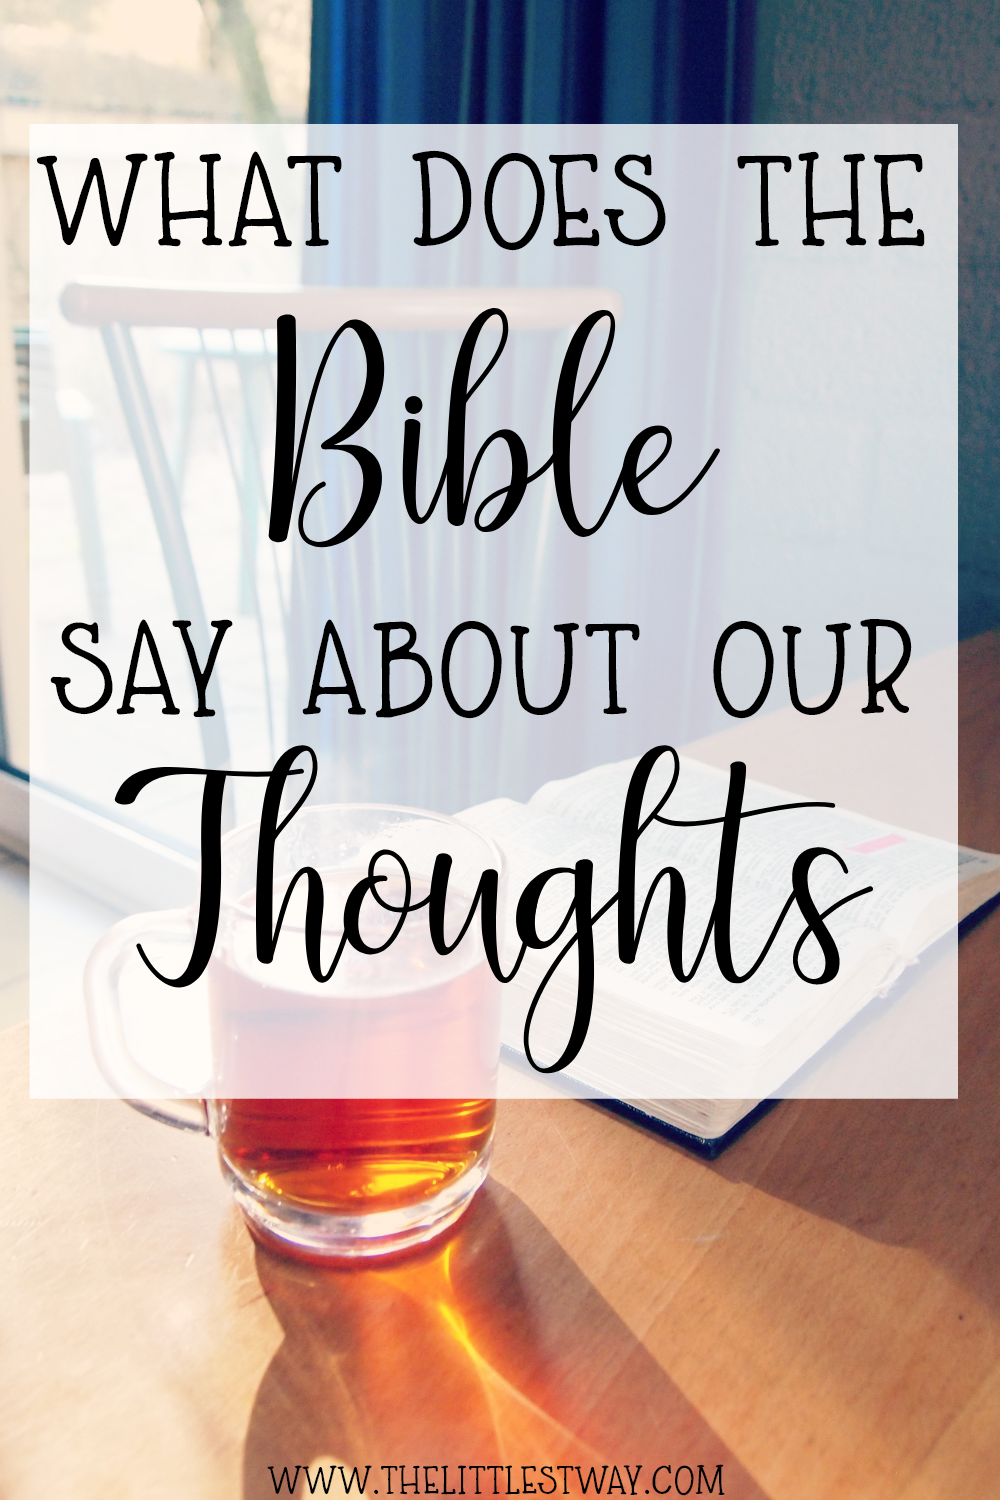 The Bible has more than you might think to guide us in our thoughts.